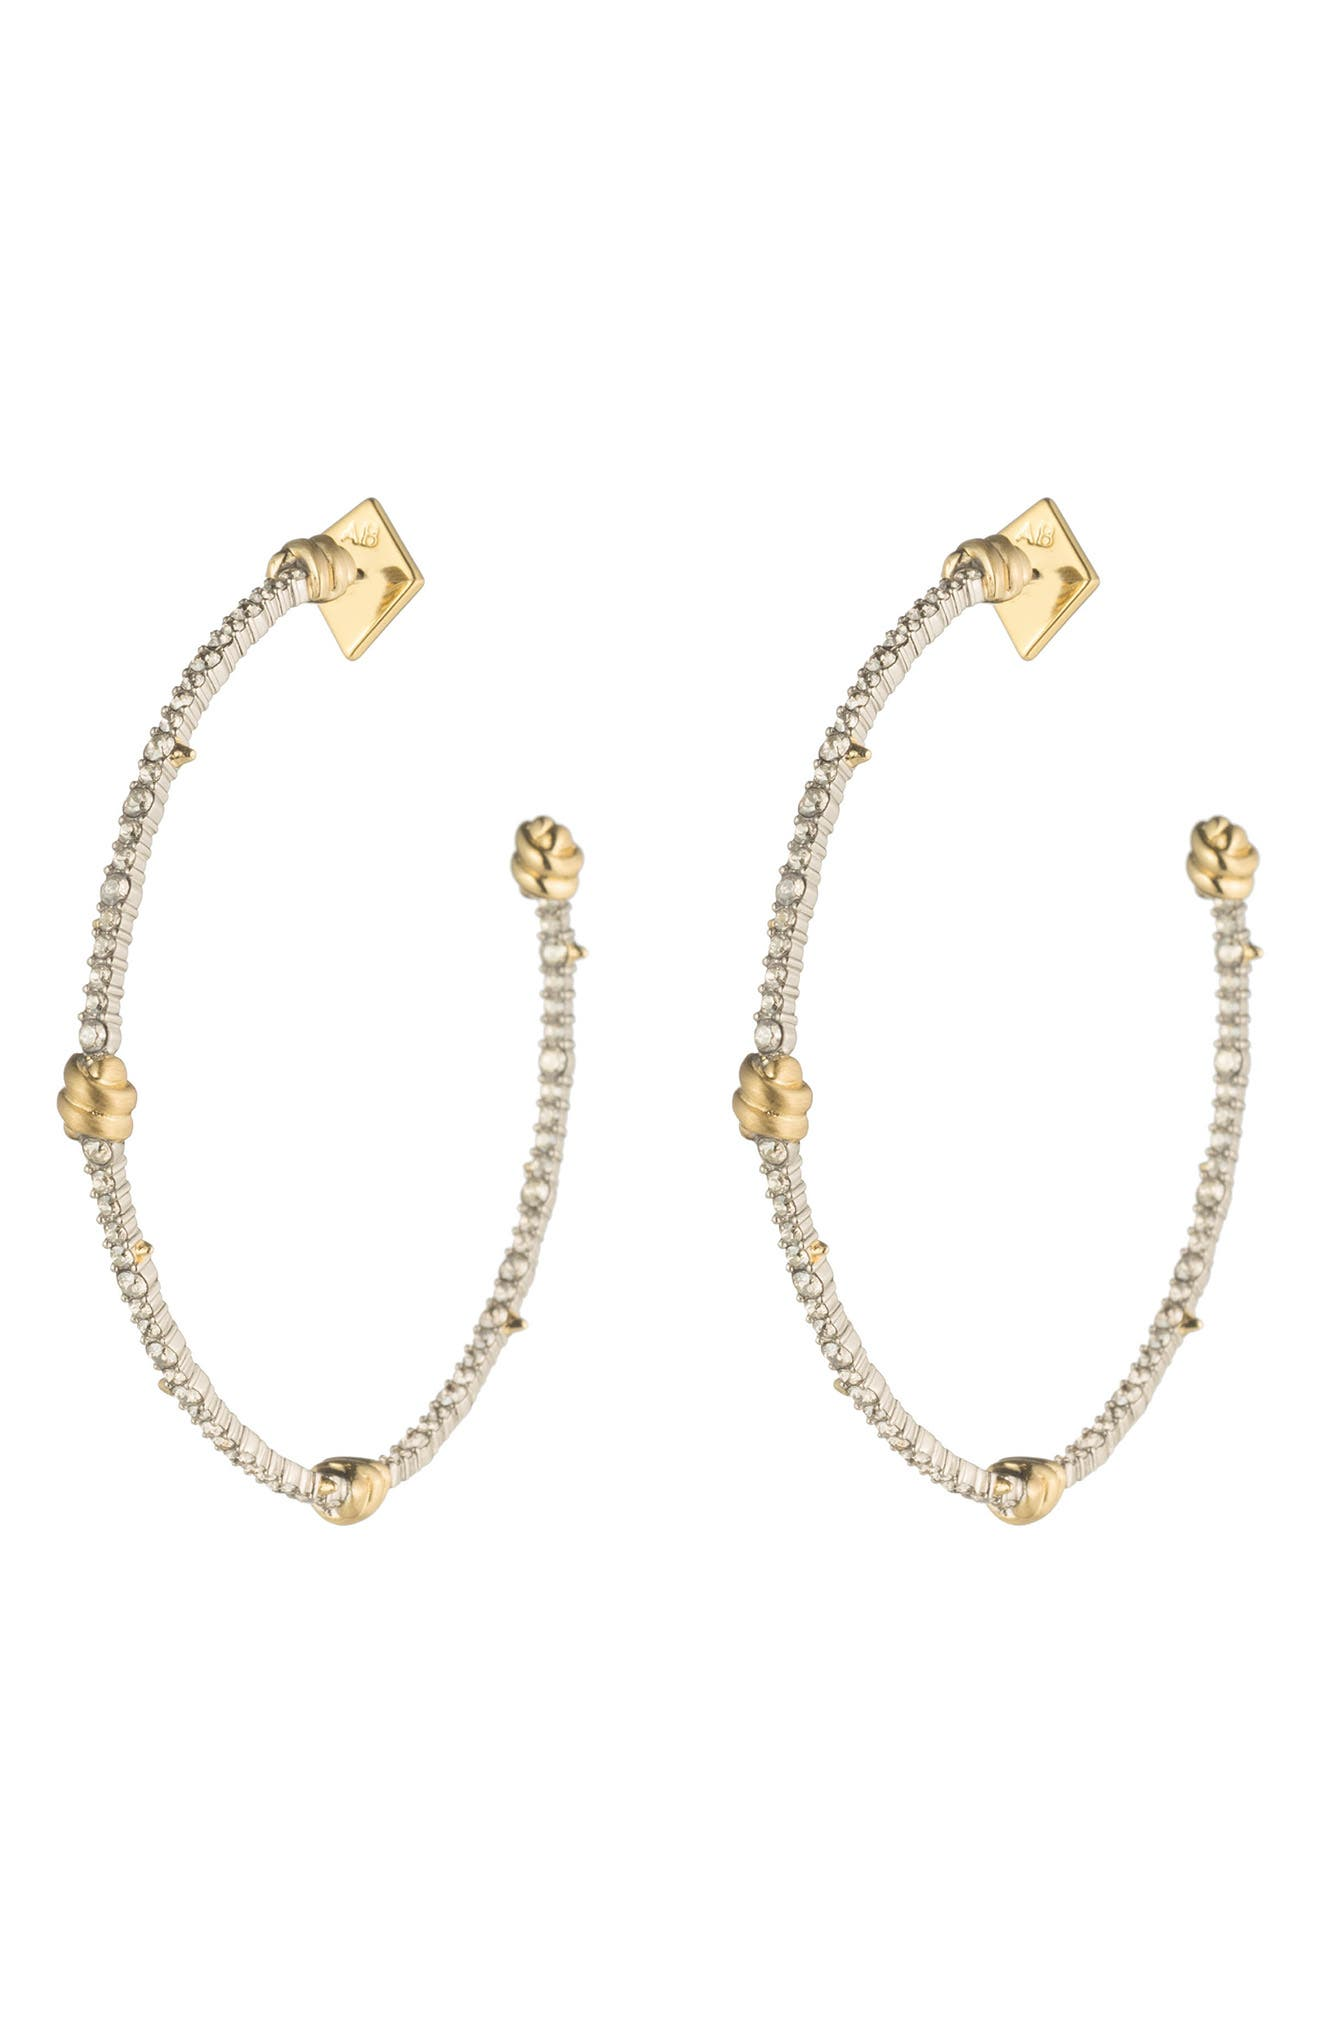 Crystal Pavé Knotted Hoop Earrings,                         Main,                         color, 710